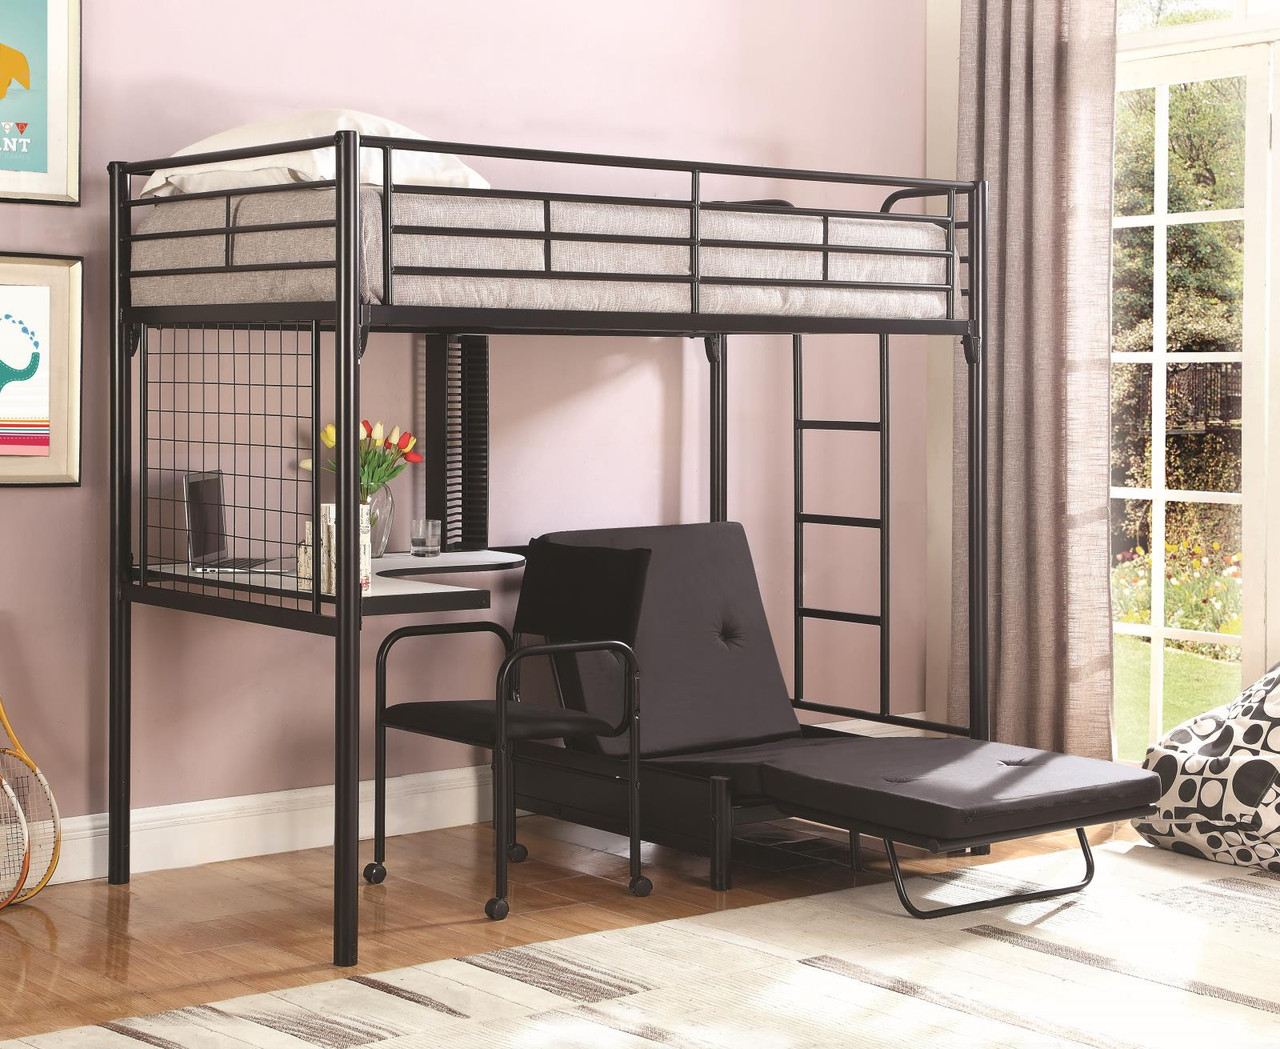 Jenner Workstation Loft Bed Jenner Twin Futon Workstation Loft Bed Black 2209 On Sale At Stringer Furniture Serving Jackson Ms